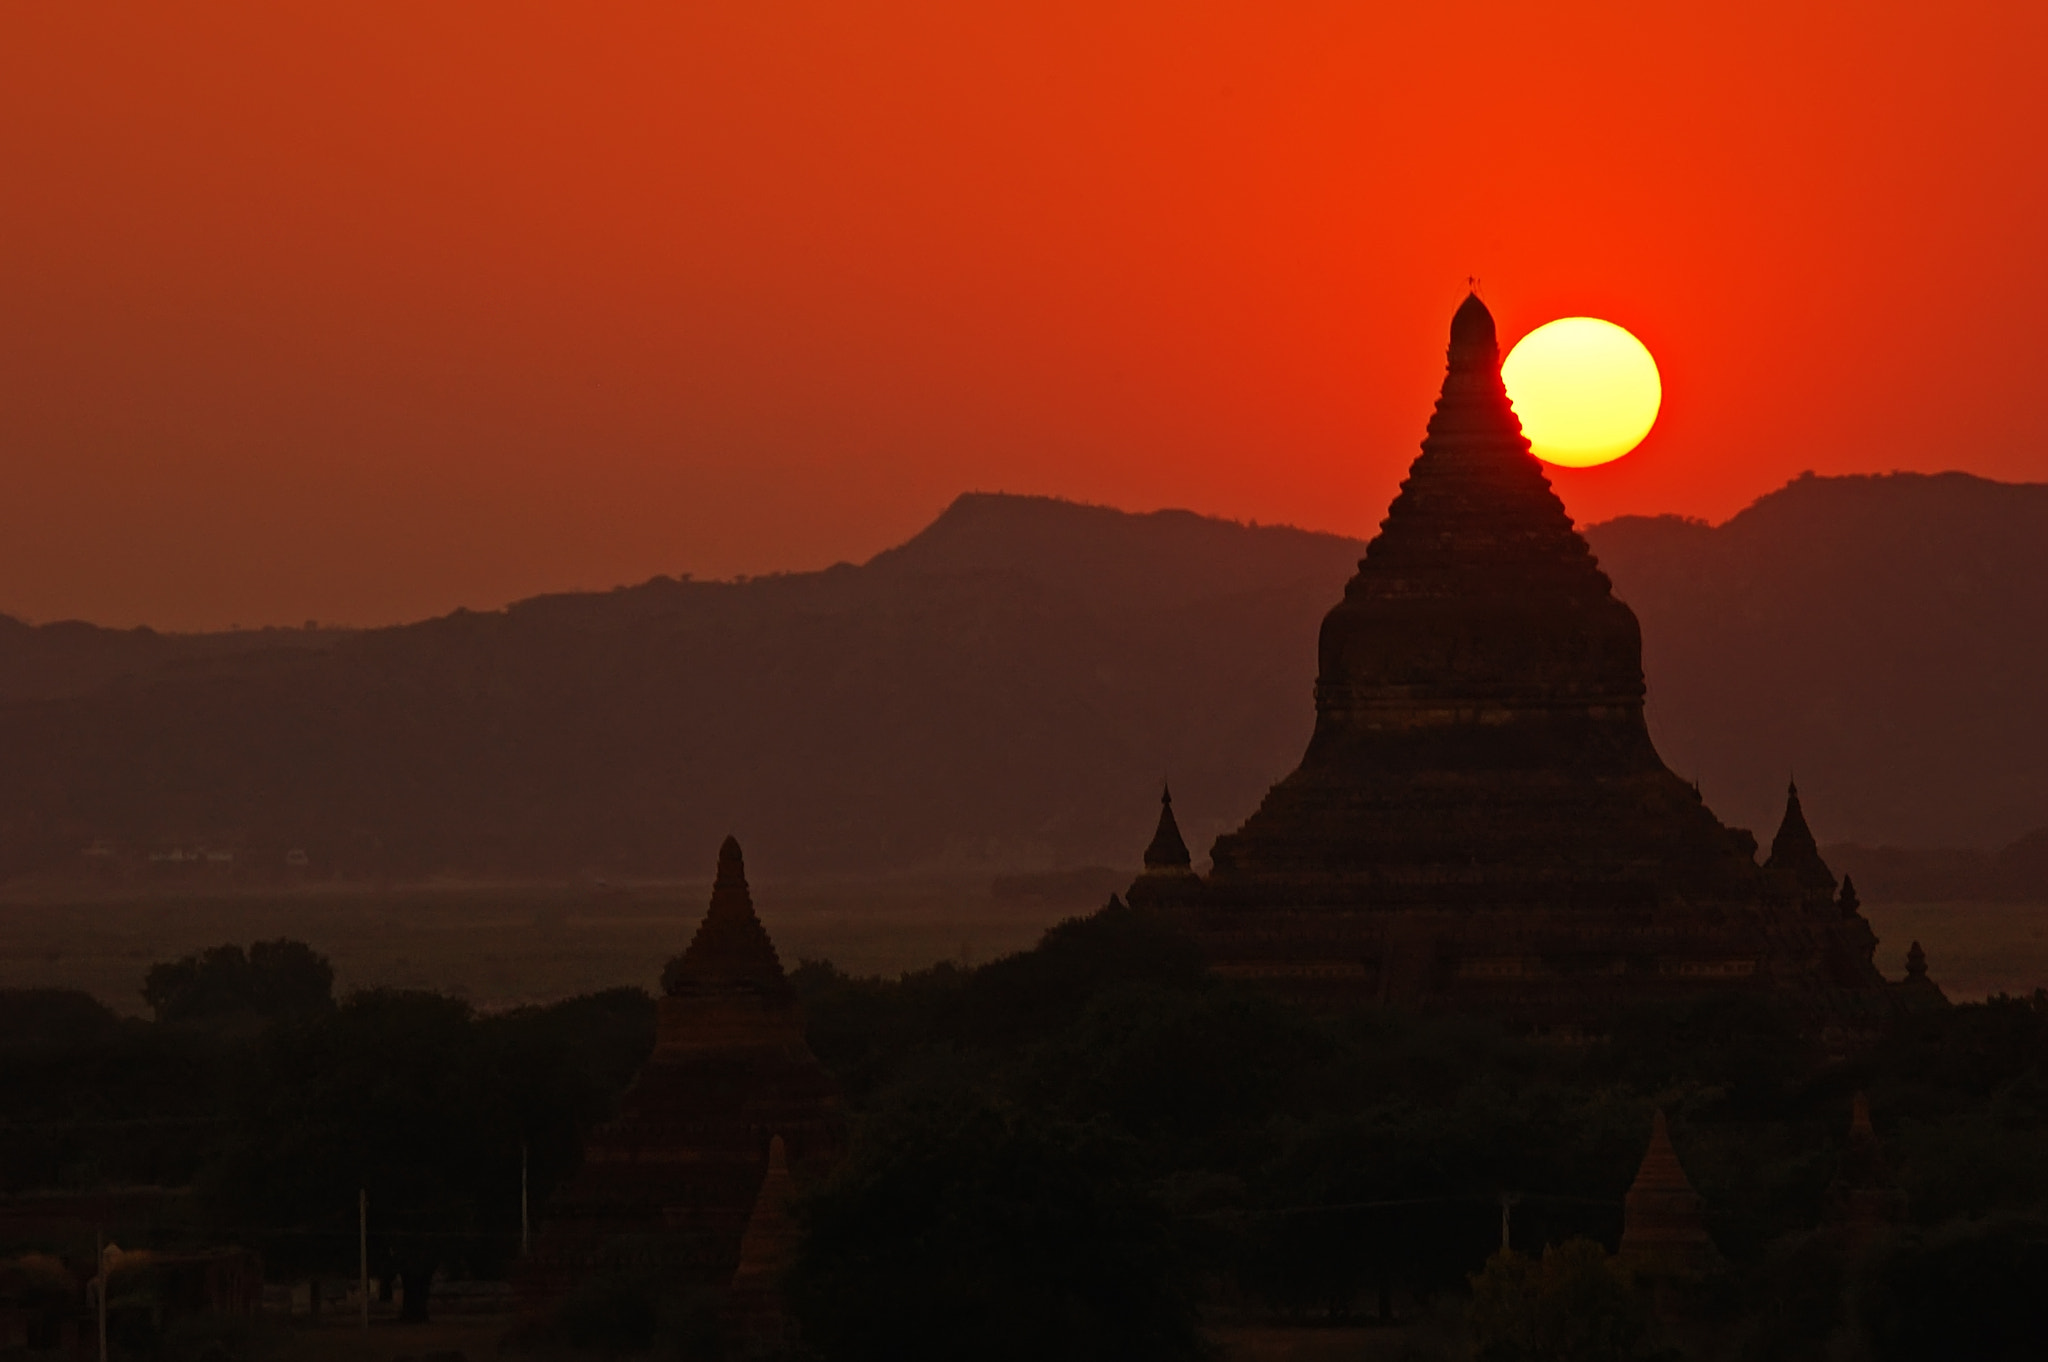 Photograph Sunset in Bagan by Csilla Zelko on 500px